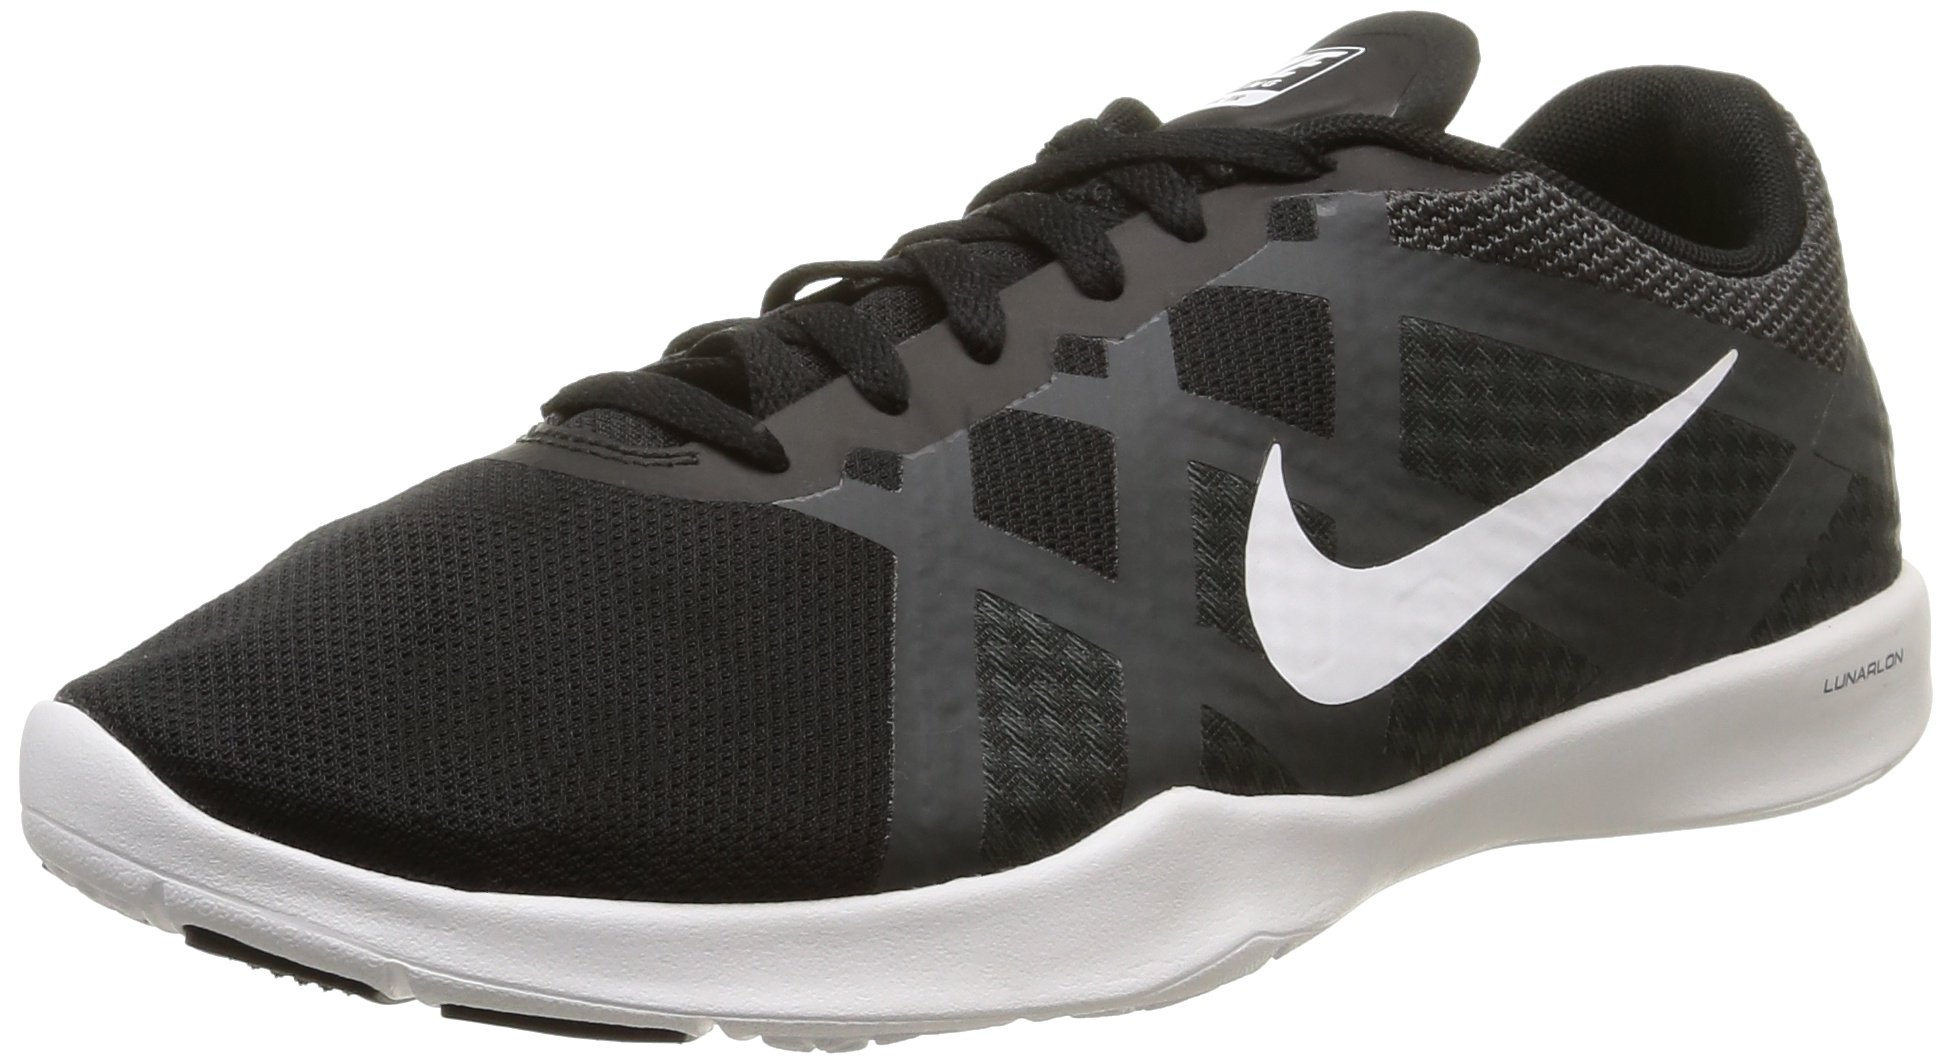 Nike Women's Lunar Lux TR Cross Trainer Black/White/Anthracite/Volt 6.5 B(M) US by NIKE